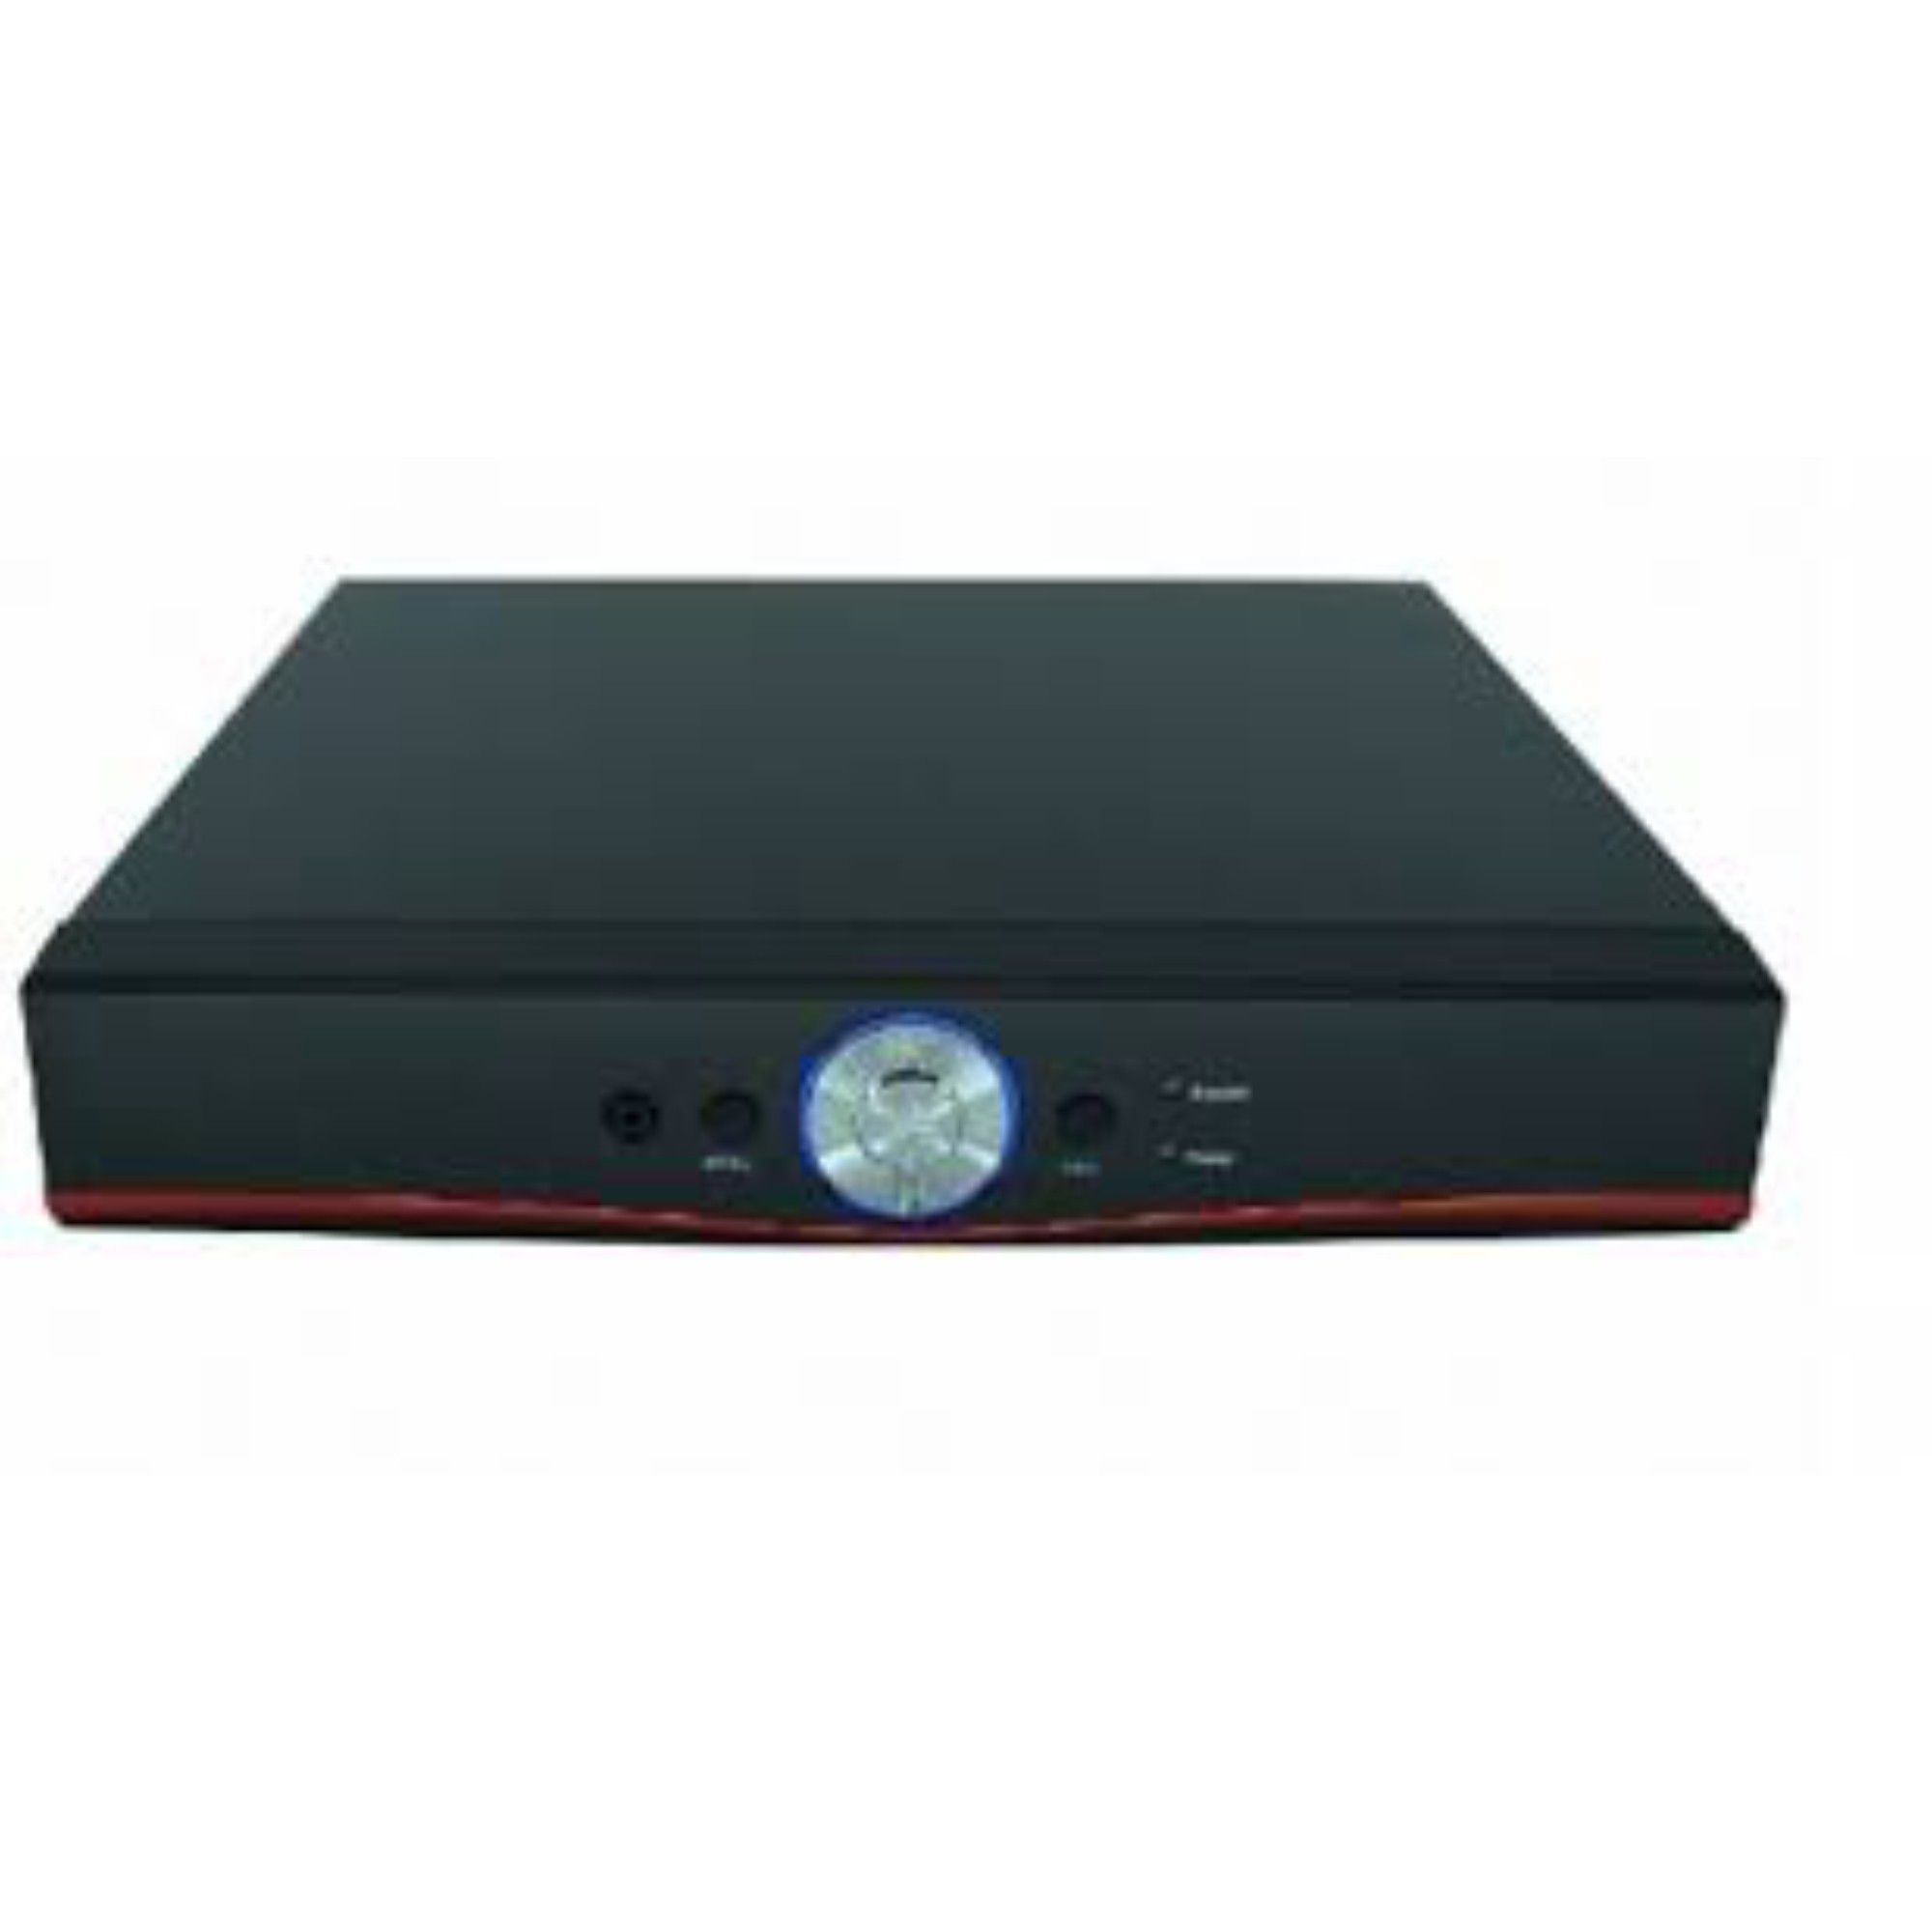 DVR Stand Alone 16 Canais Full HD